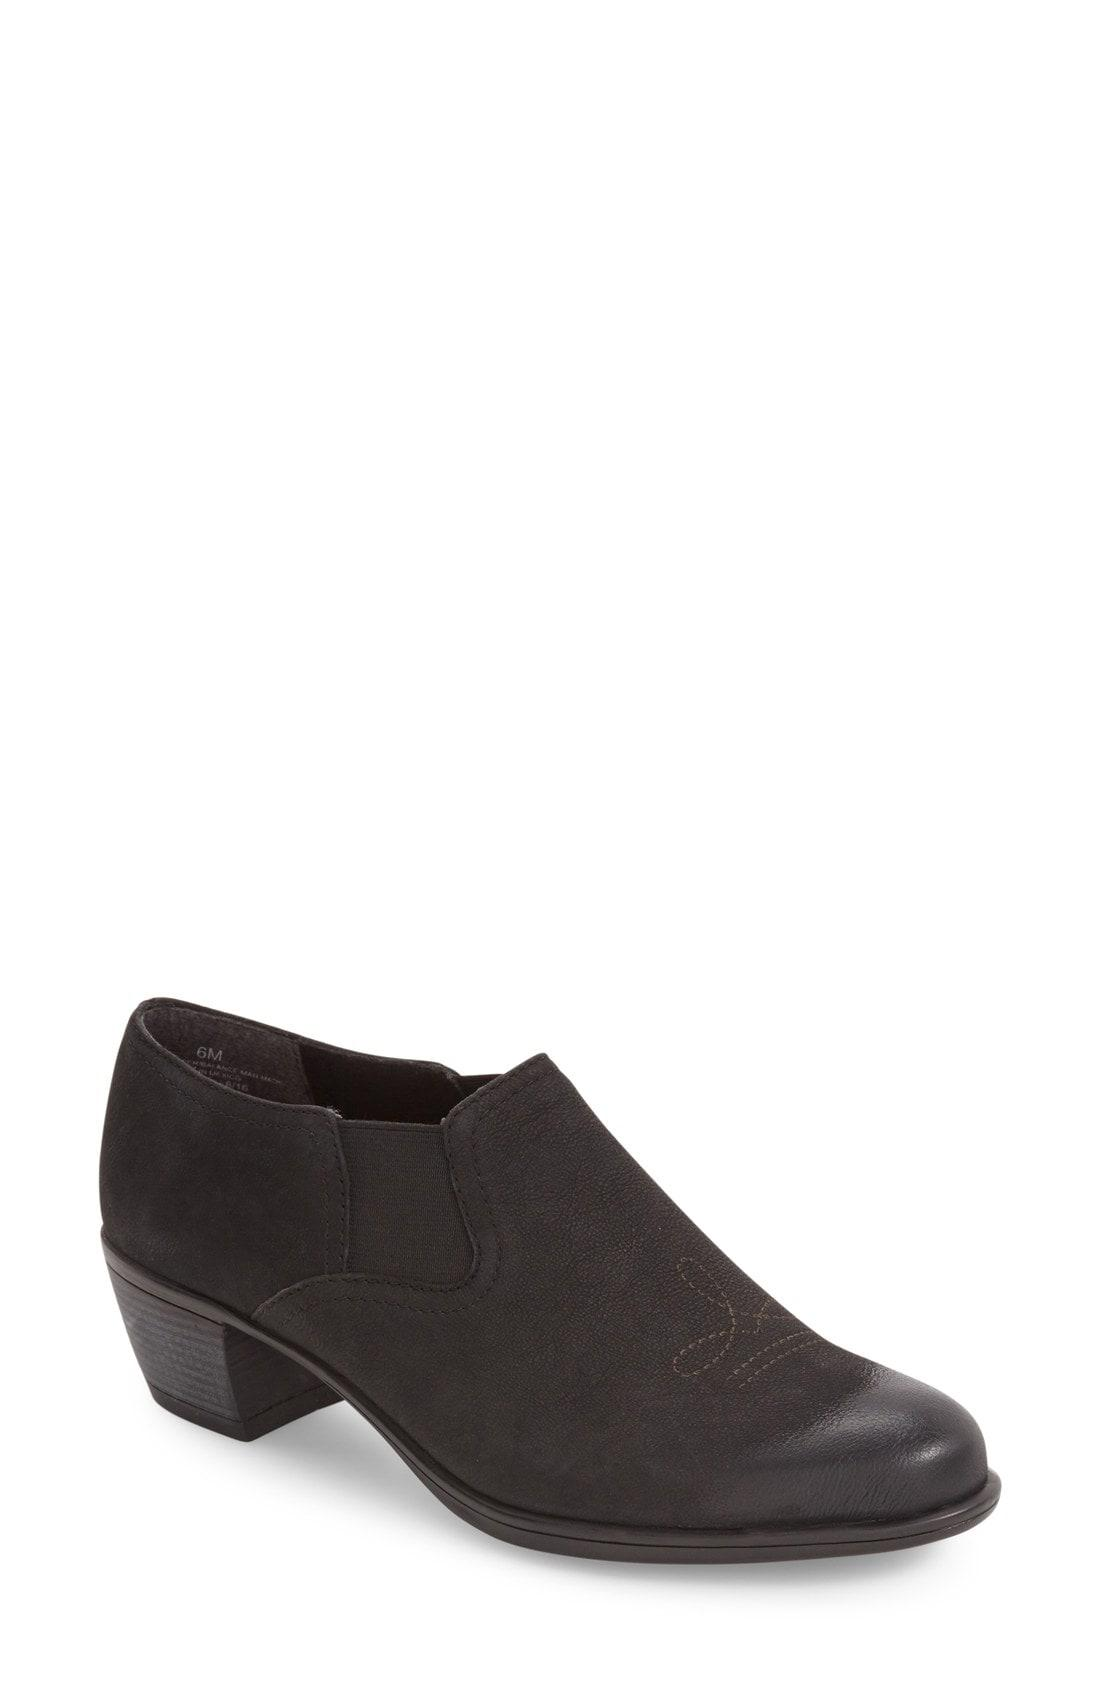 5423855690f Munro - Multicolor Silverton Water Resistant Ankle Bootie - Lyst